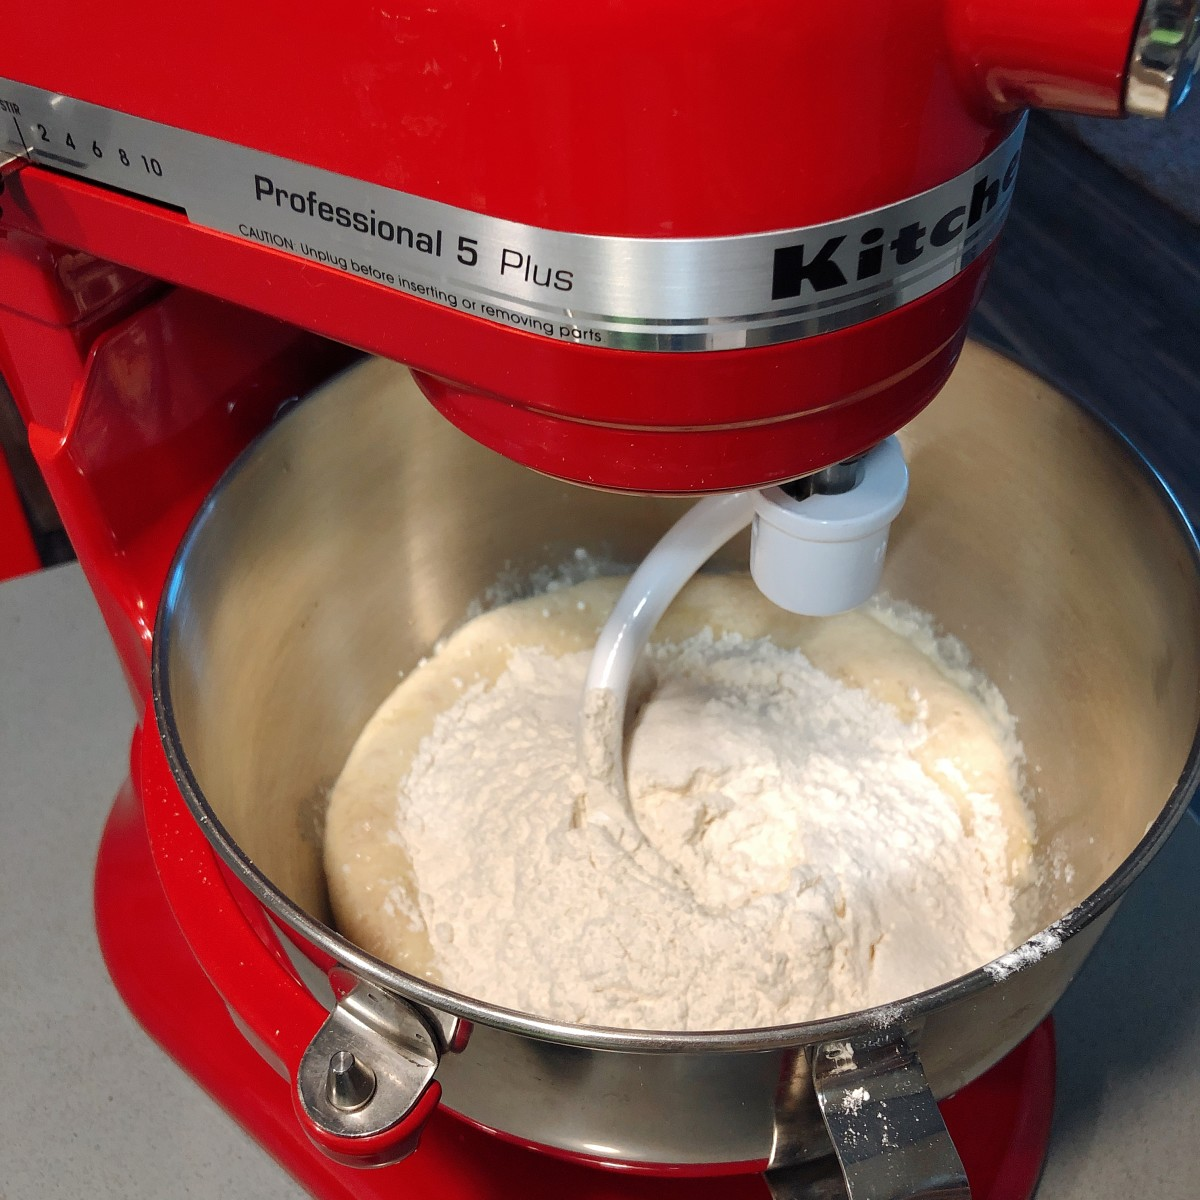 In a mixing bowl, combine the yeast mixture, flour, salt, sugar, and egg mixture. Use a stand mixer, beat the ingredients at the medium speed for 5 minutes.